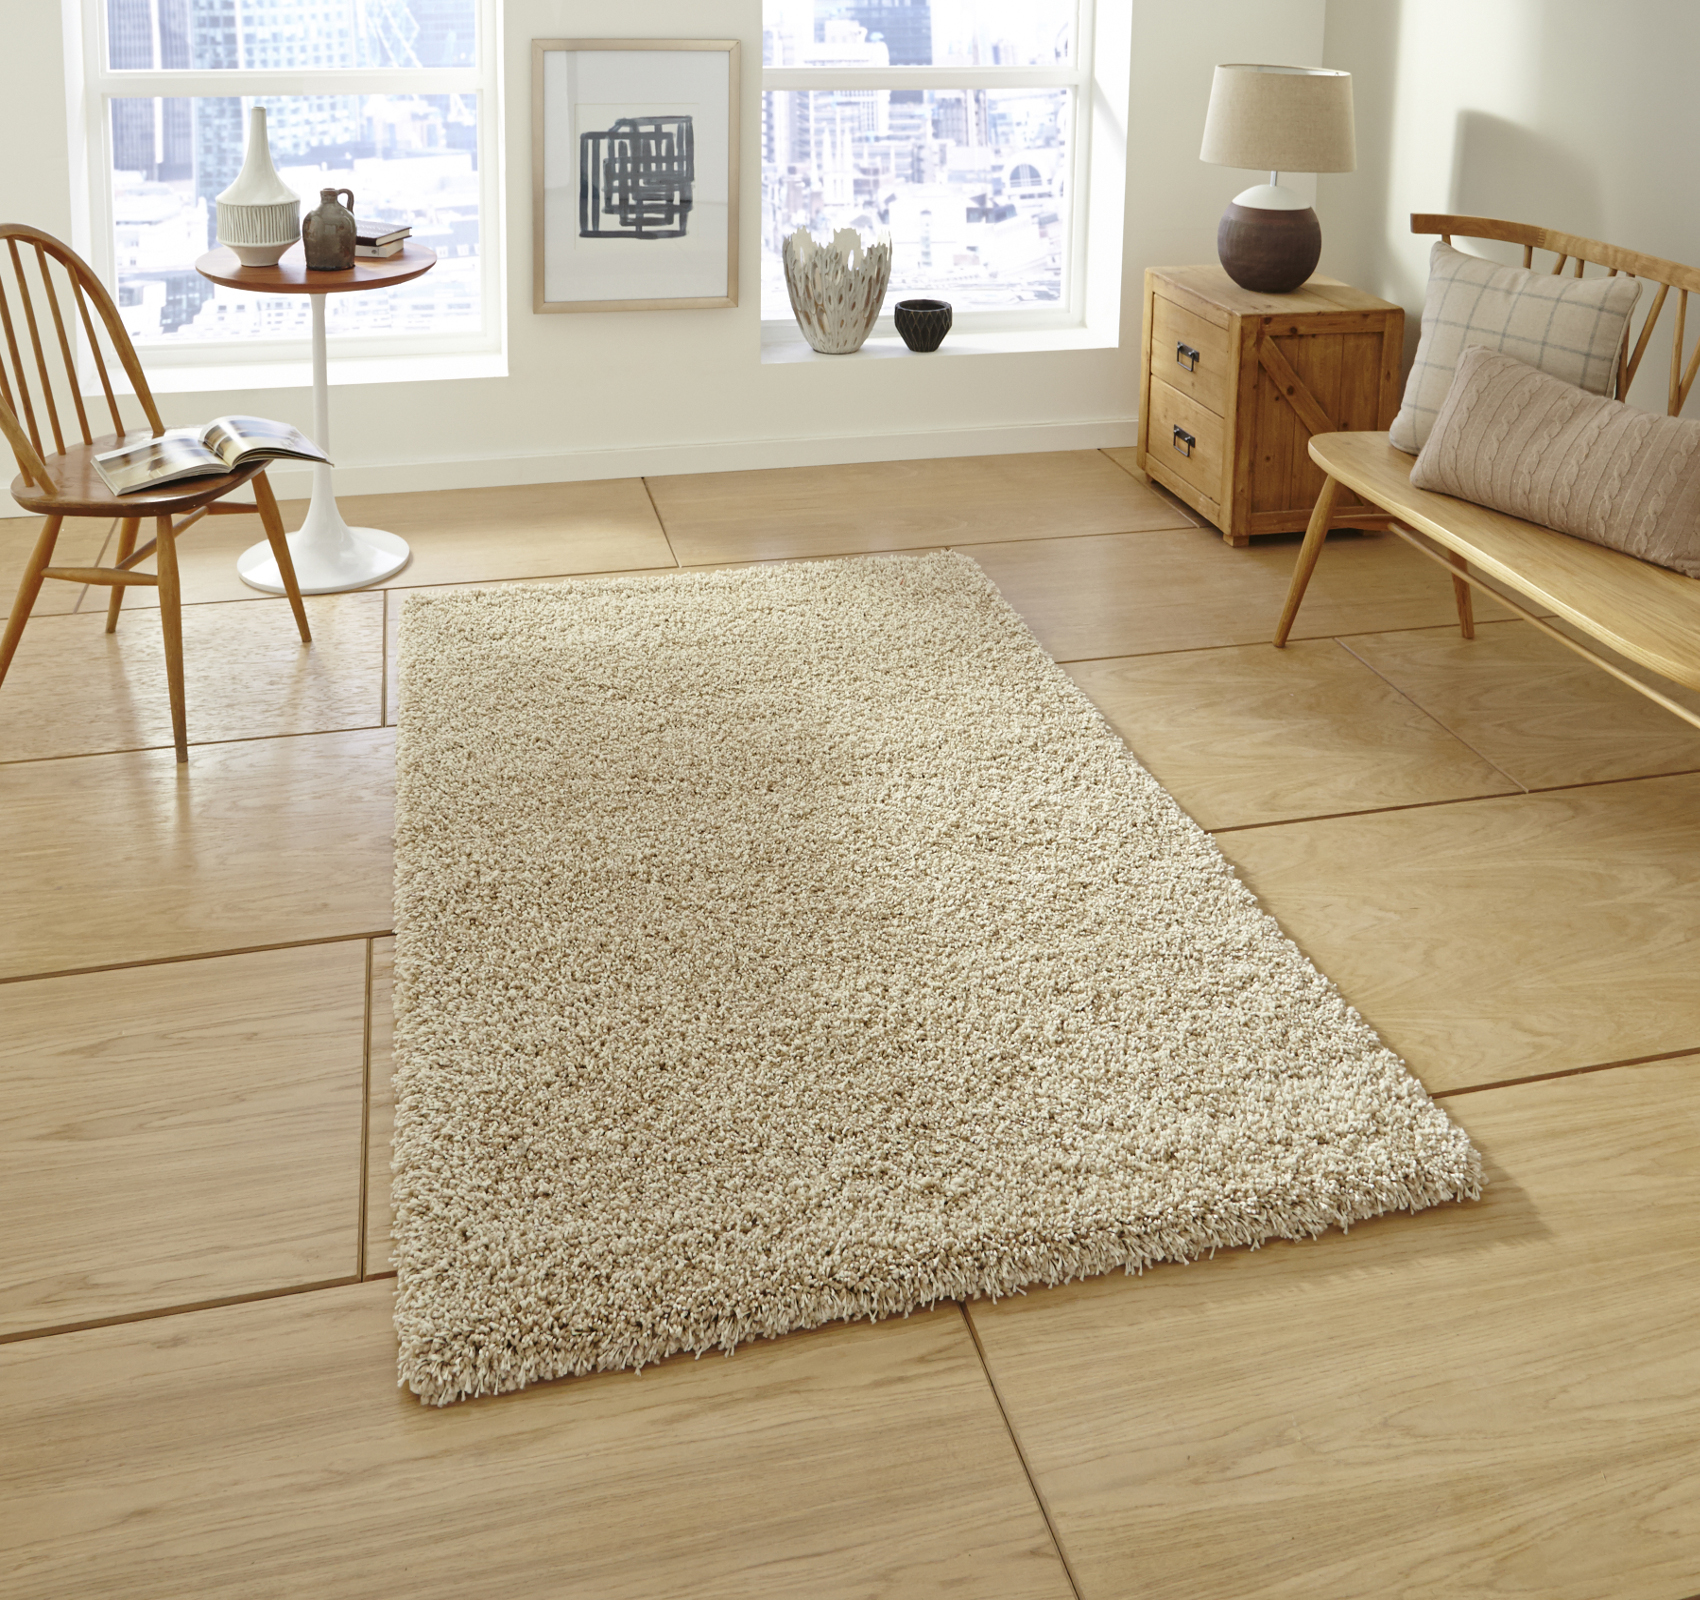 Soft Thick Gy Pile Rug Heavy Weight 100